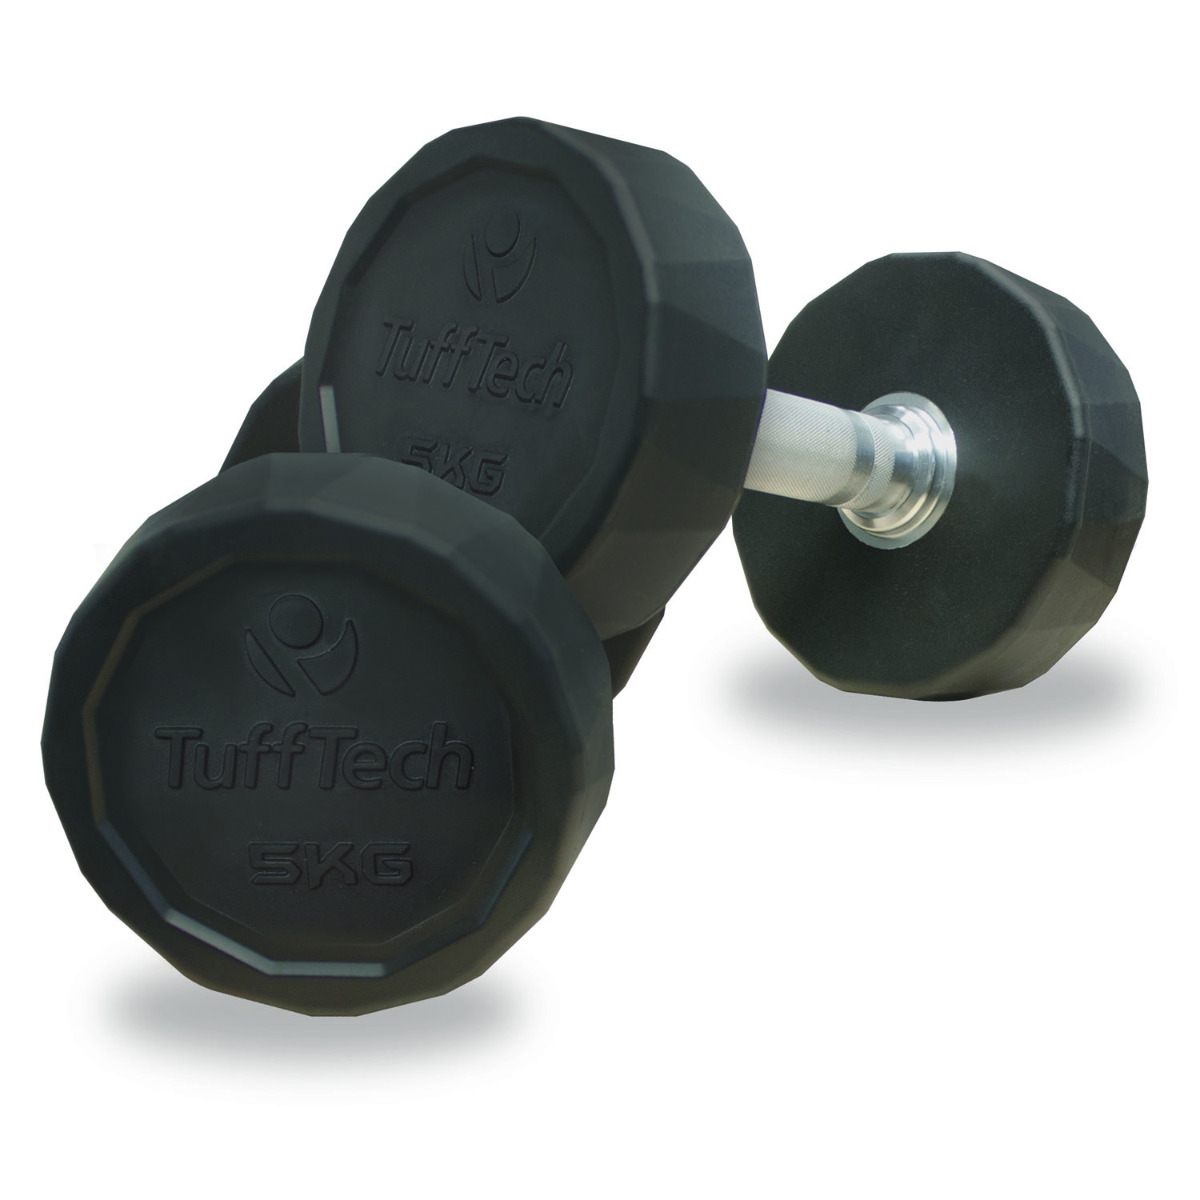 Pair of 25kg Rubber Dumbbells